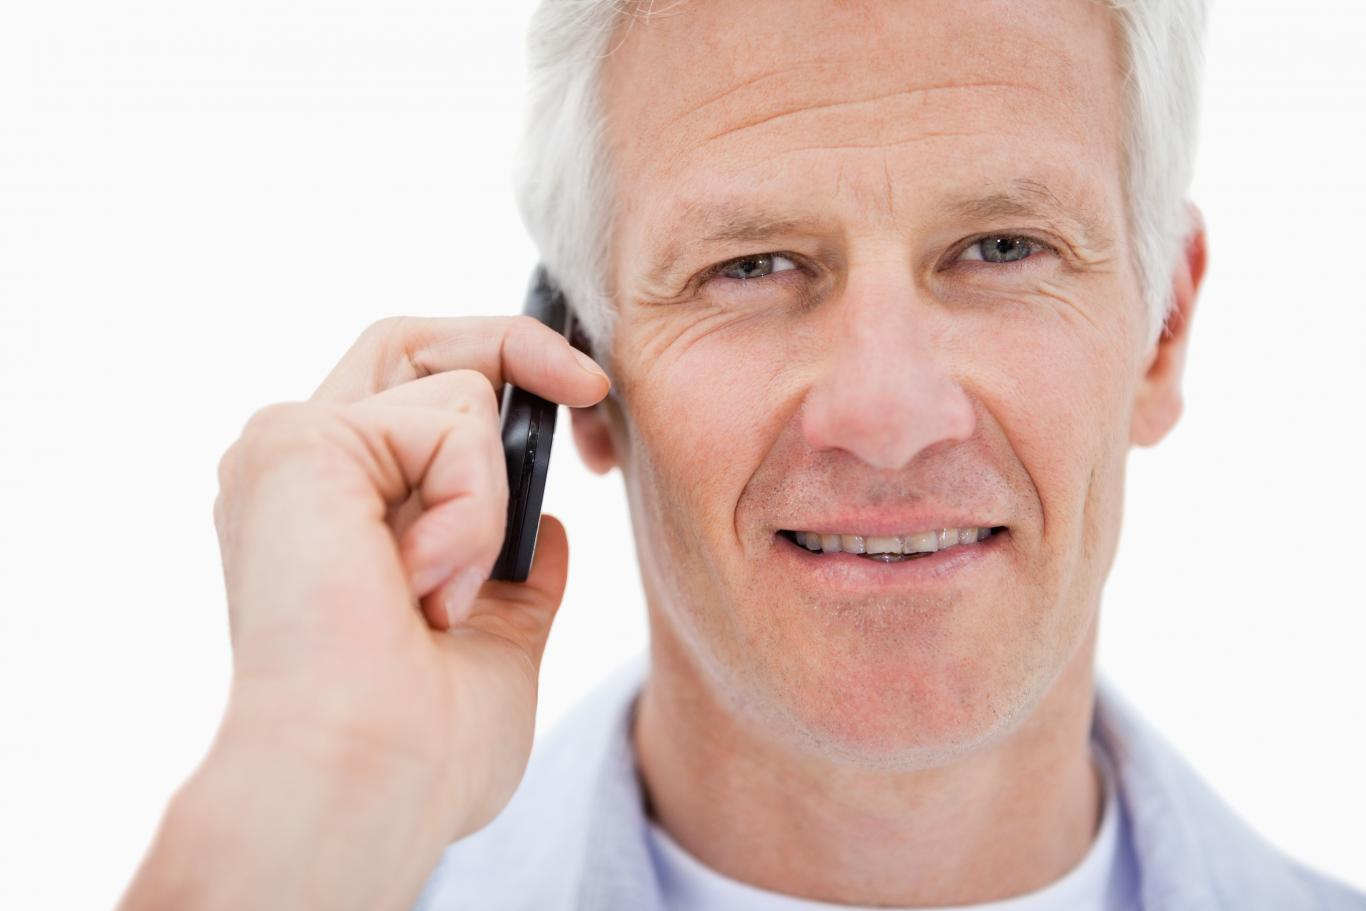 Smiling-mature-man-making-phone-call